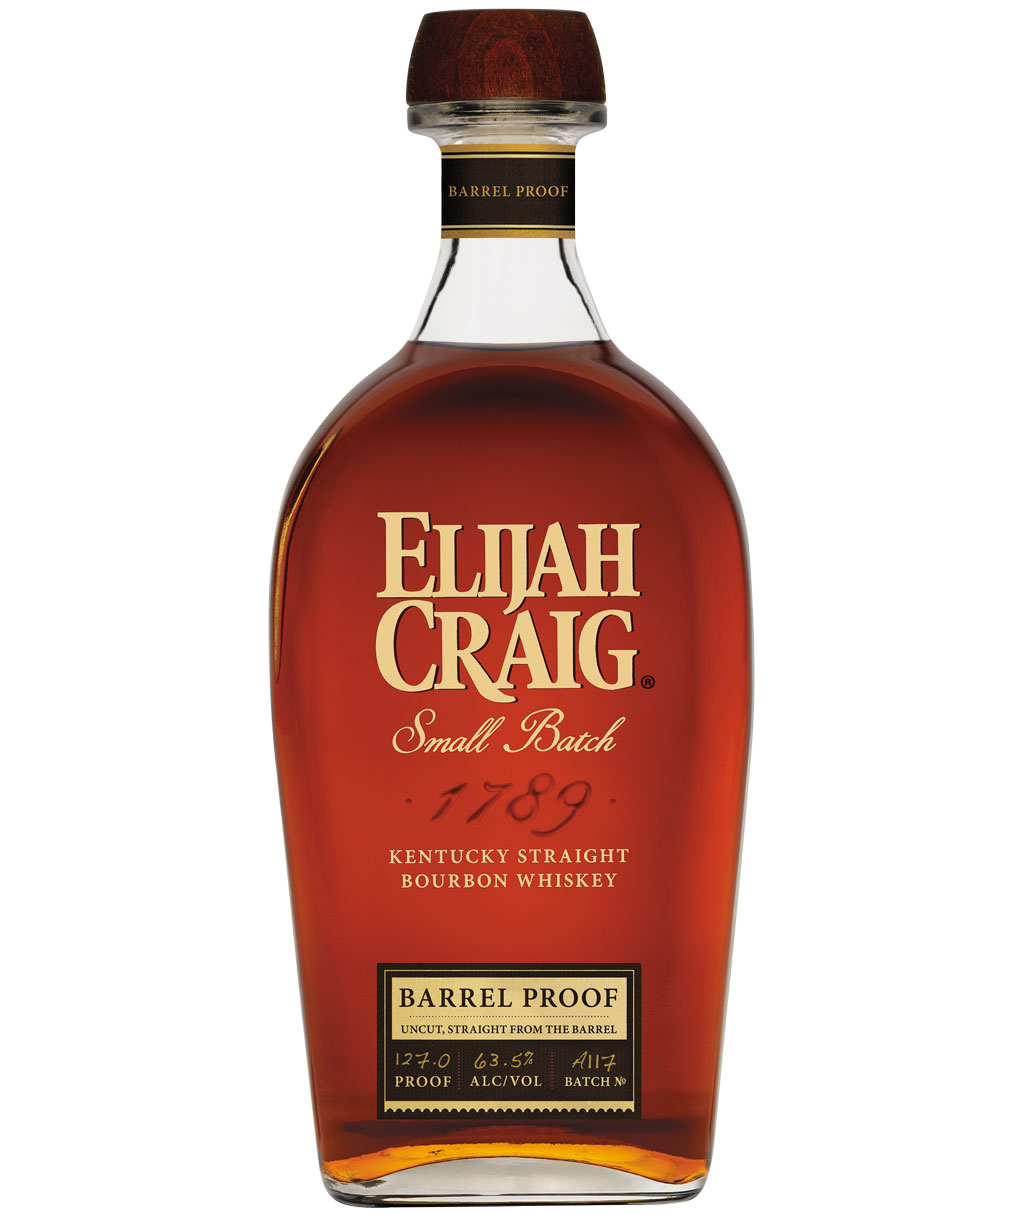 Elijah-craig-barrel-proof-n.jpg